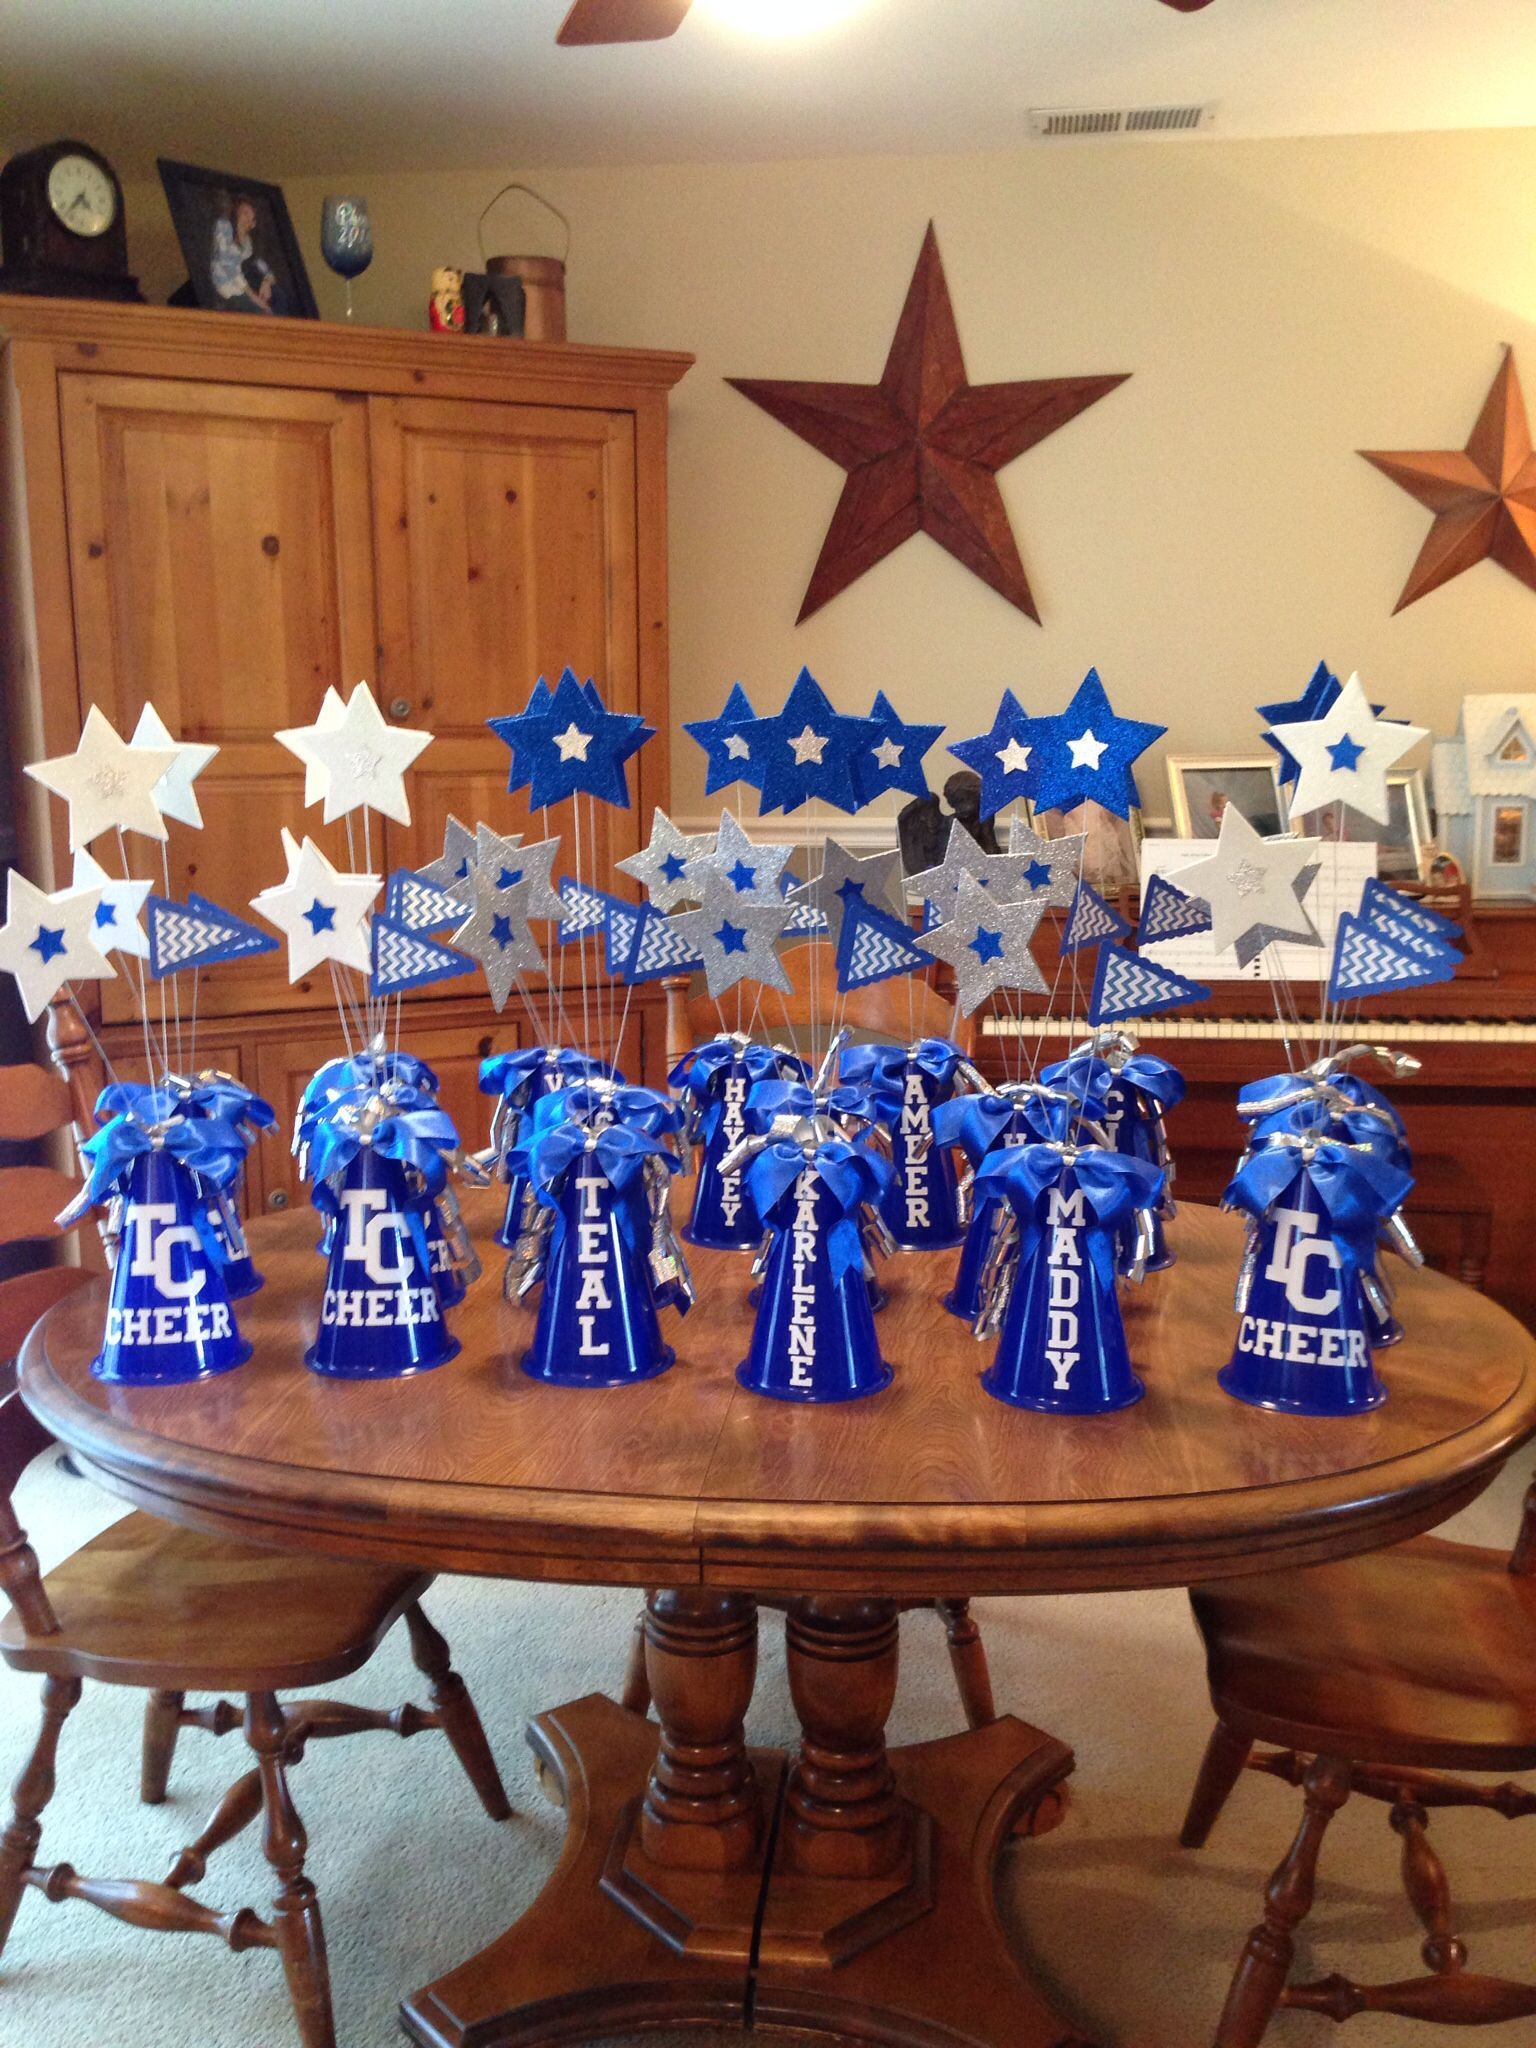 Centerpieces for tchs titan cheer banquet projects